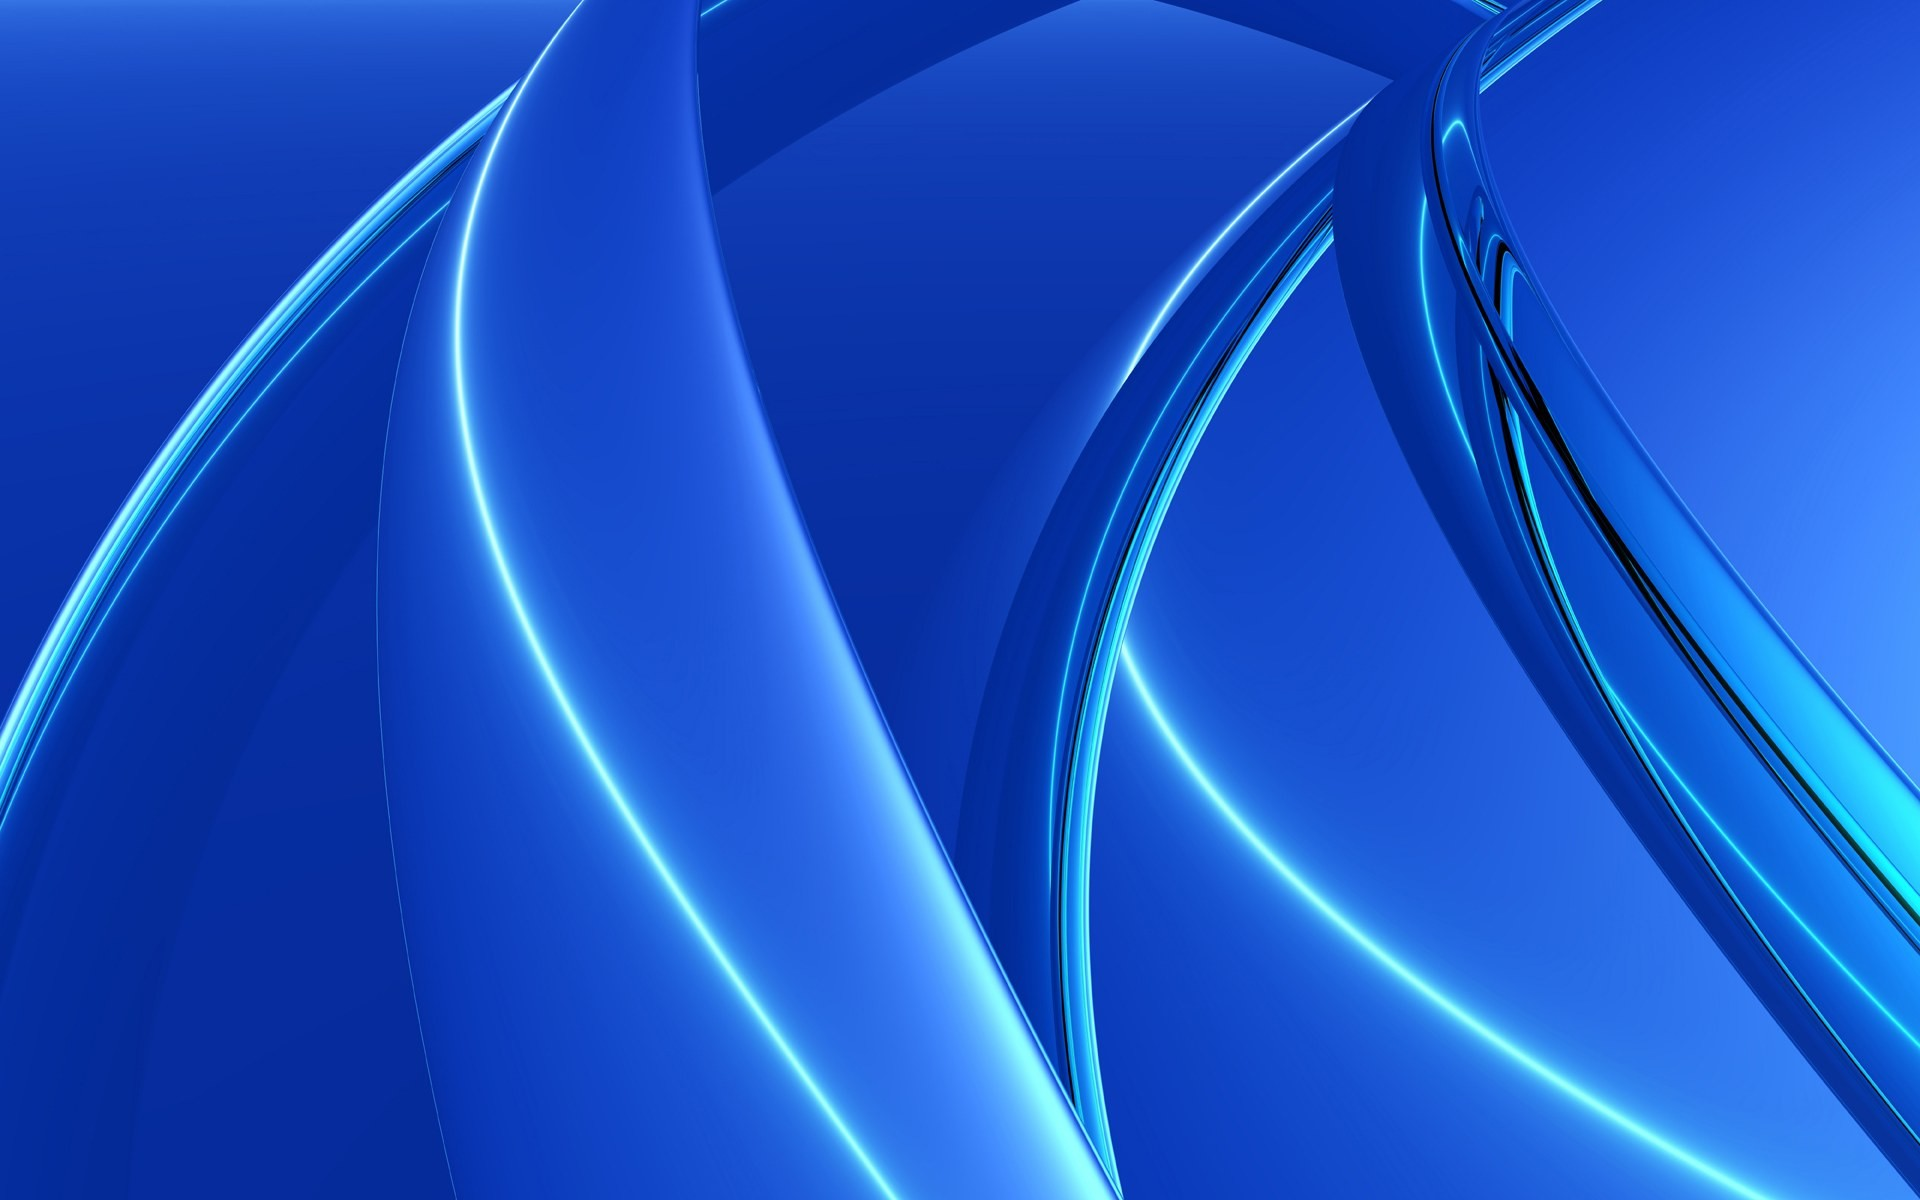 1920x1200 Blue Wallpaper Background C105b